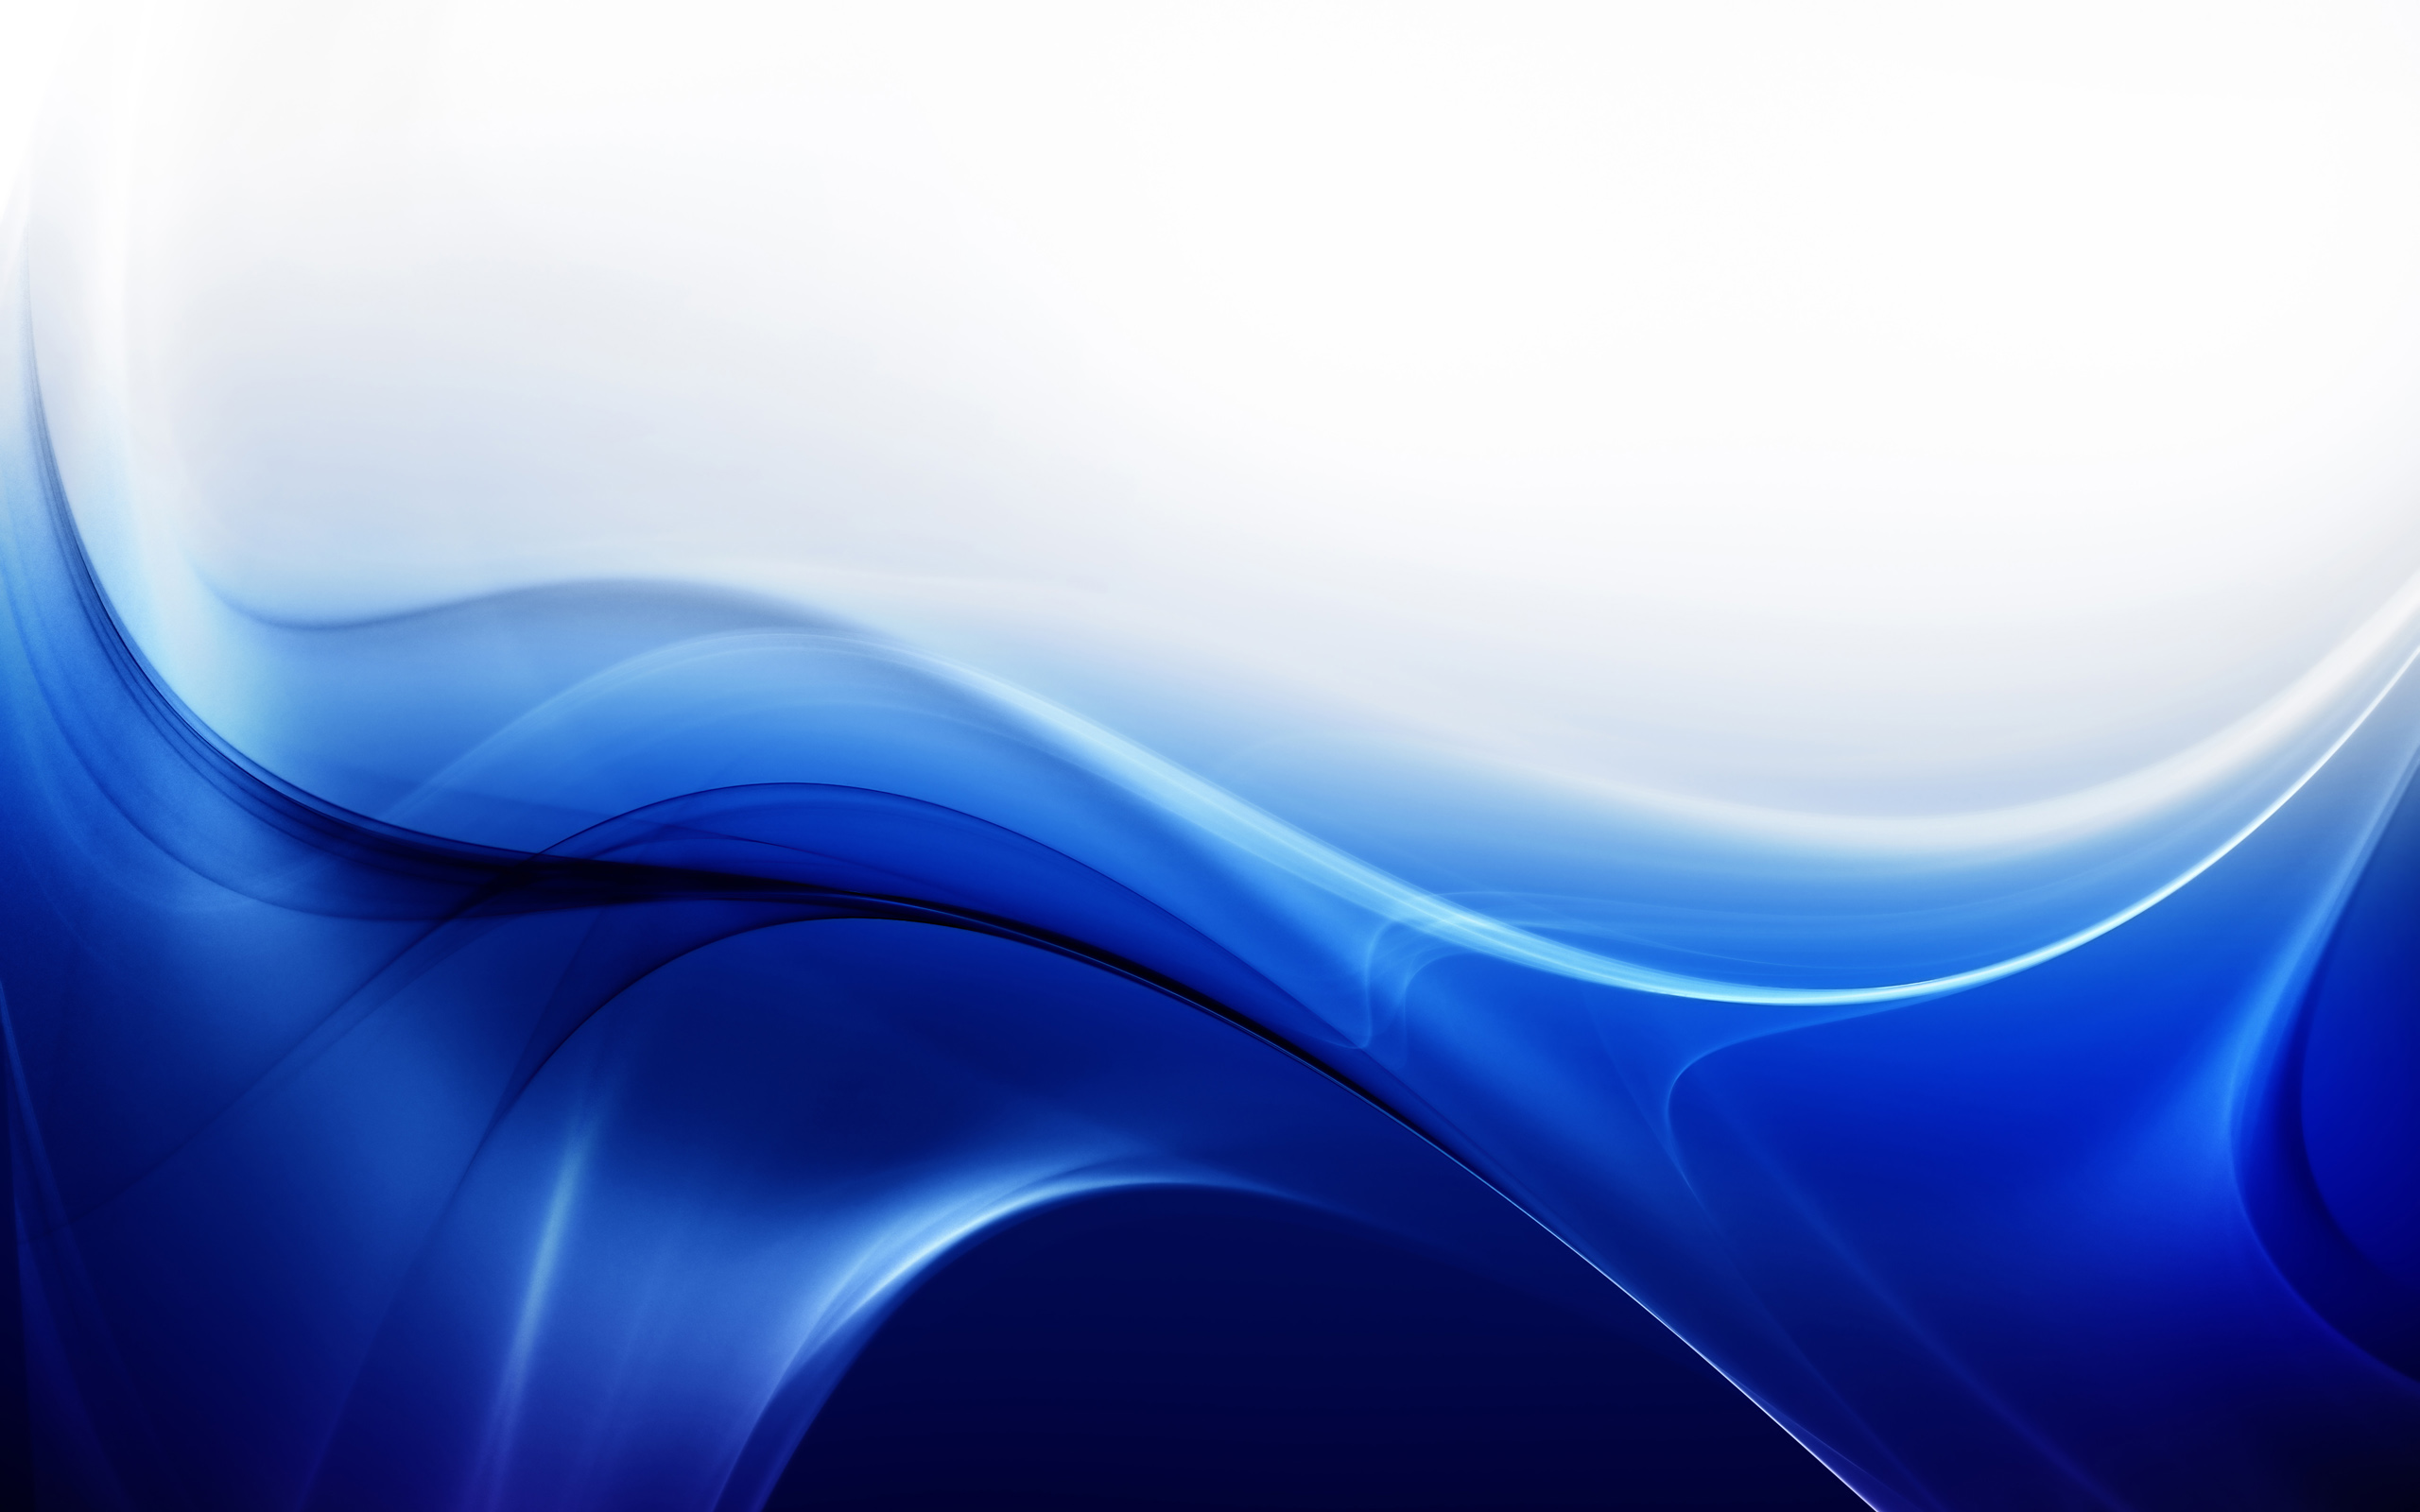 69 4k blue wallpaper backgrounds that will give your desktop perfect